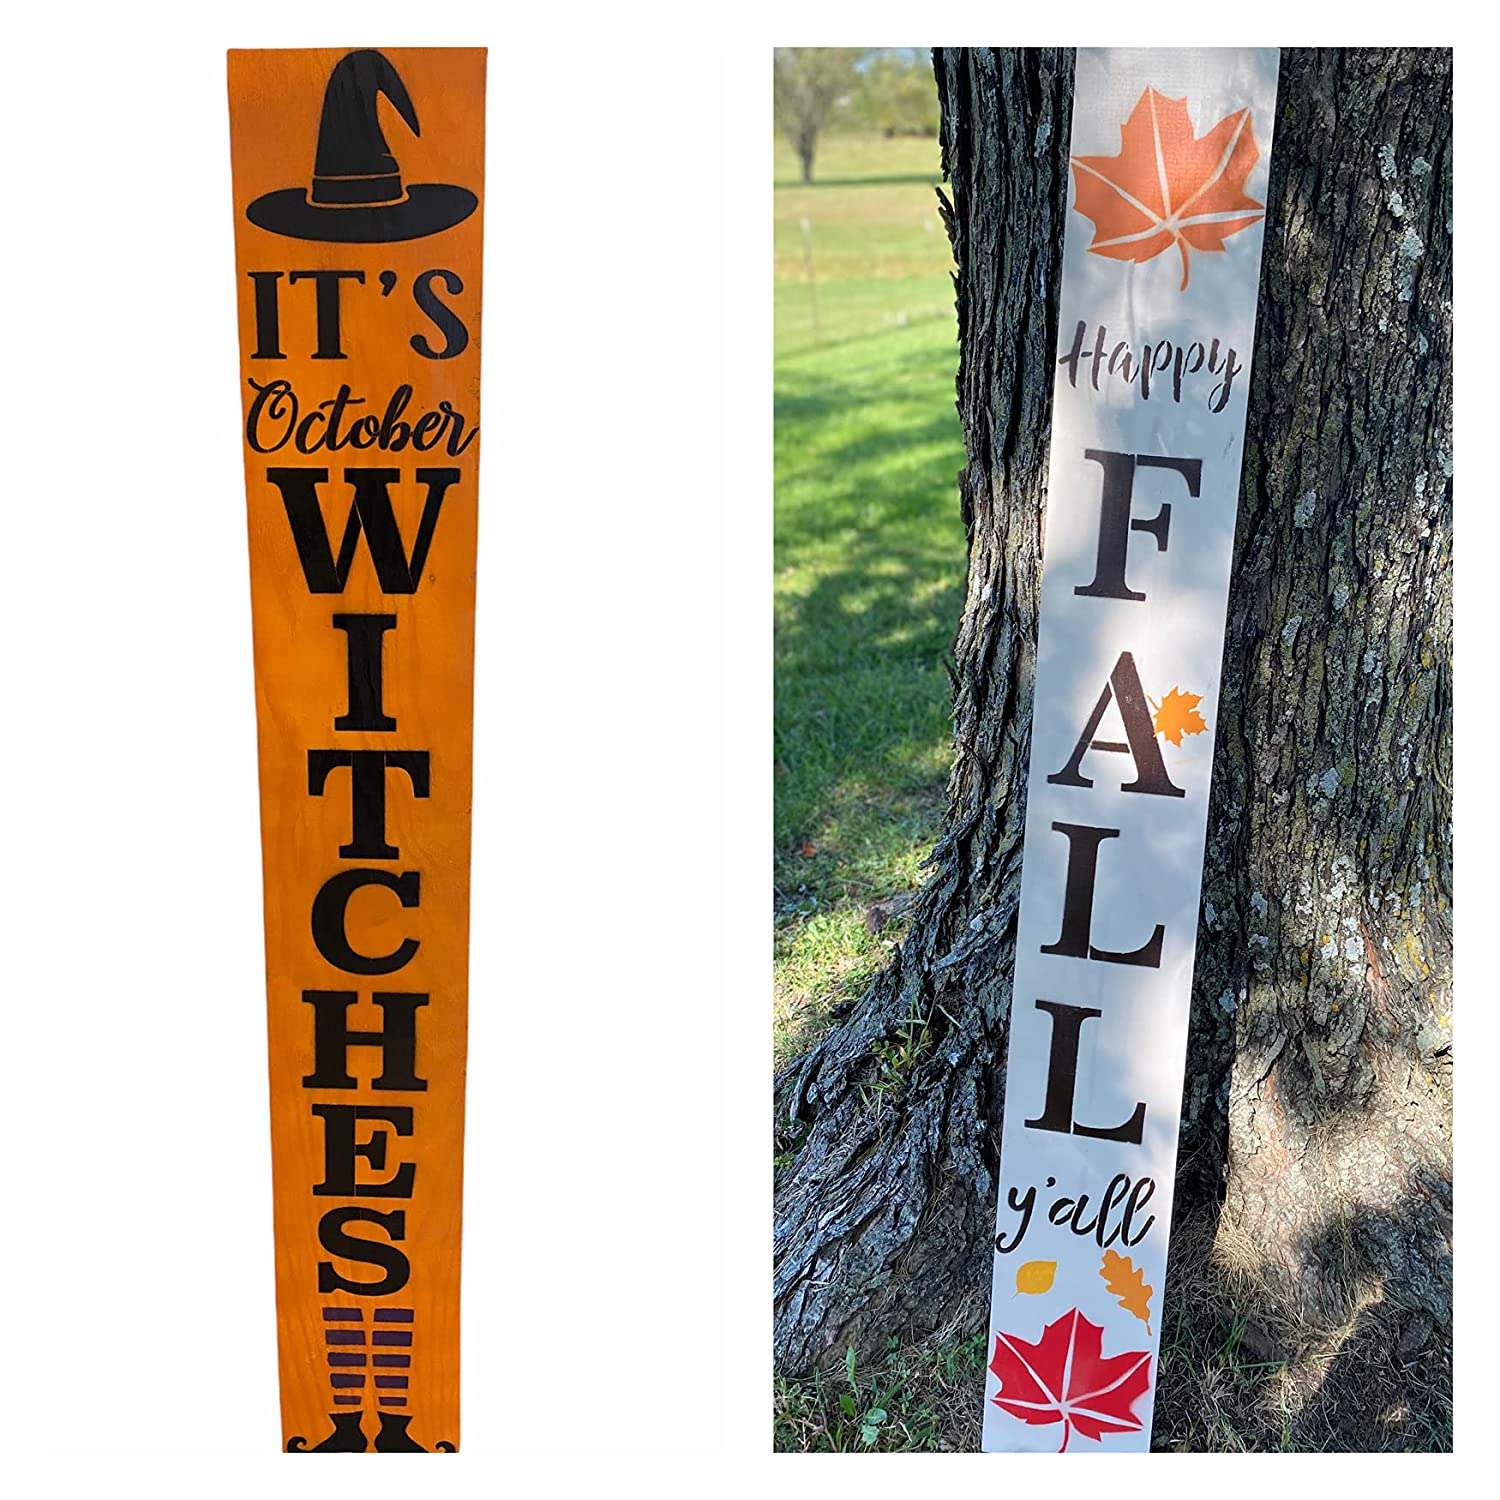 Reversible Porch Sign Ranking TOP3 Halloween Happy Super-cheap Y'all Christmas Fall Merry